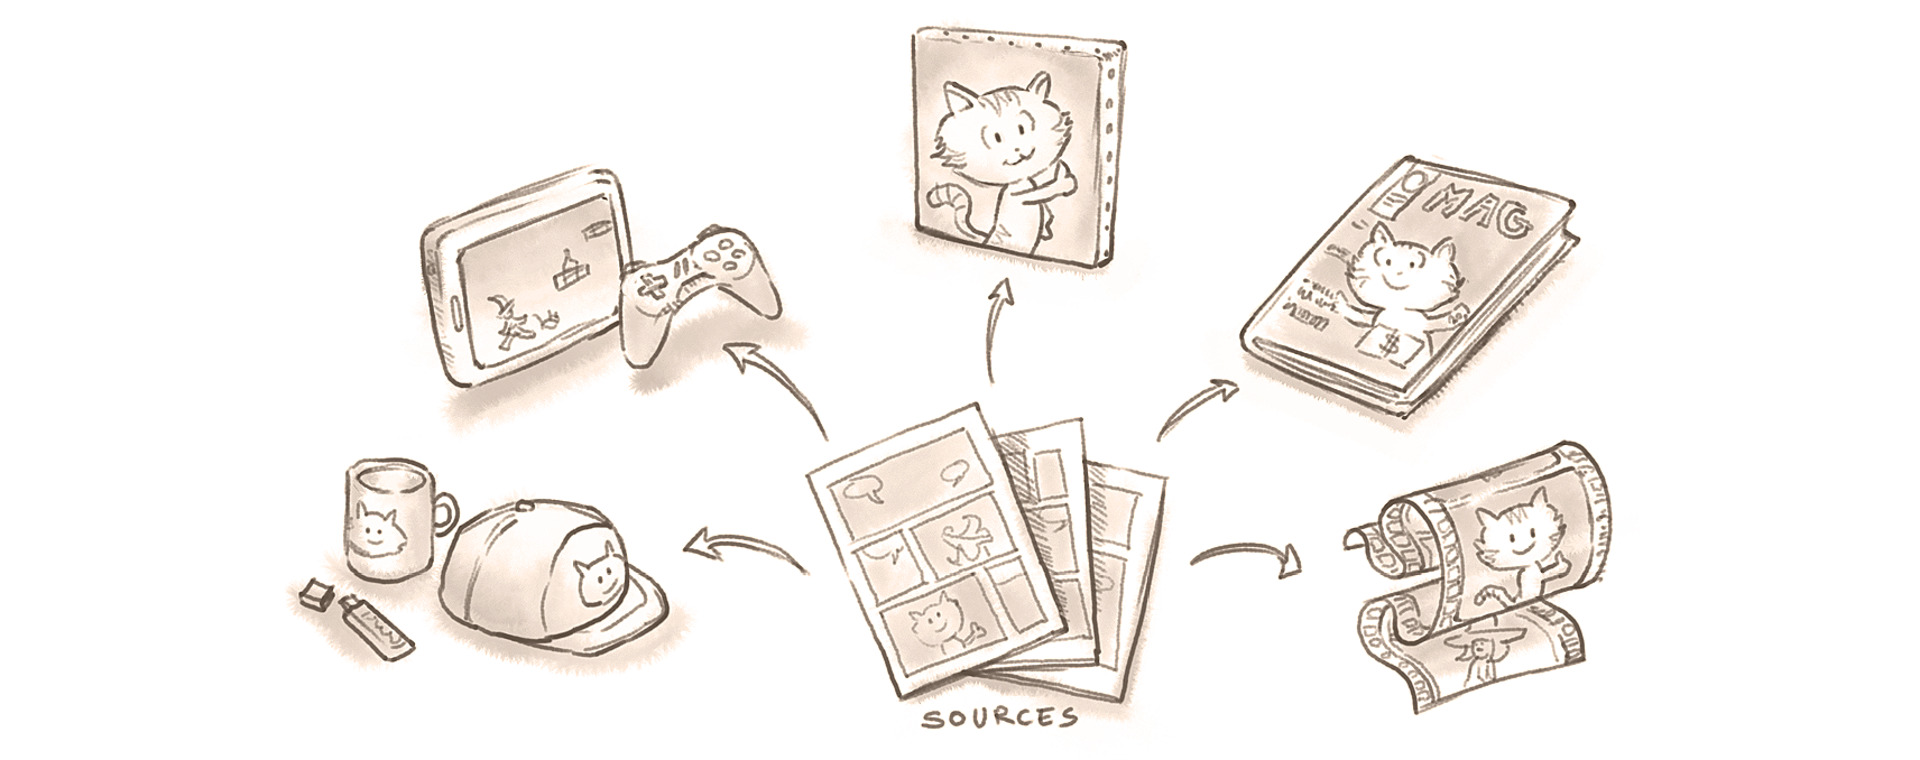 Illustration representing open-source media